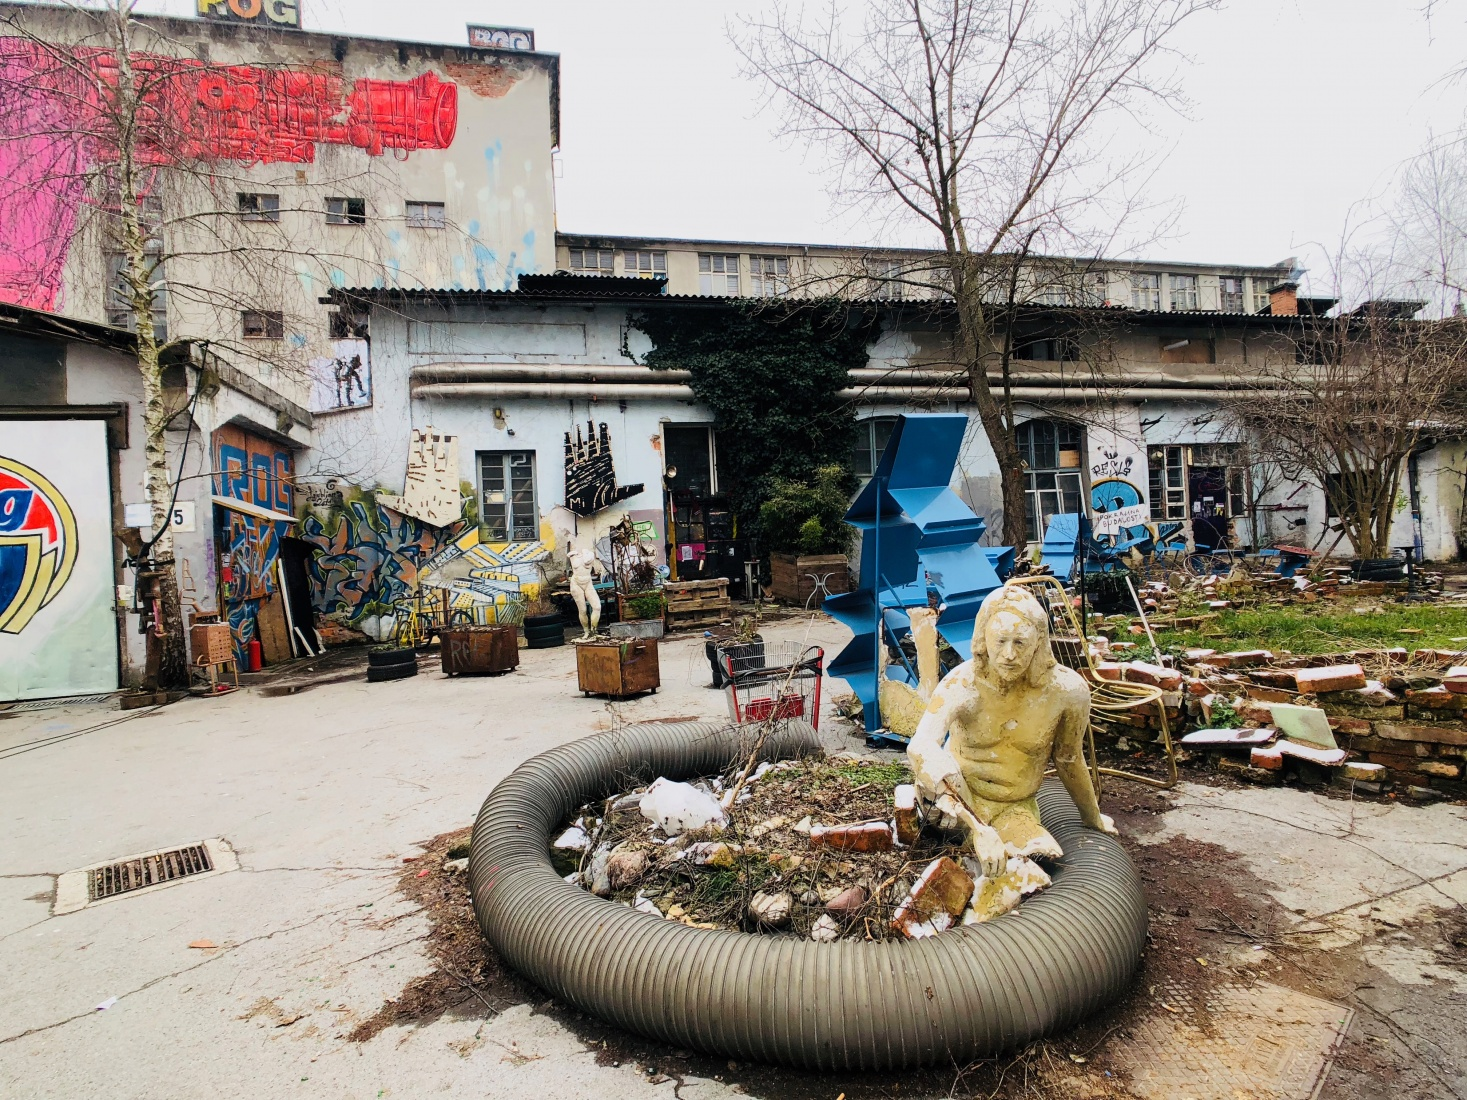 Street-art statue made of found materials and trash at Rog squat in Ljubljana, Slovenia, with graffiti and abandoned bicycle factory in the background.